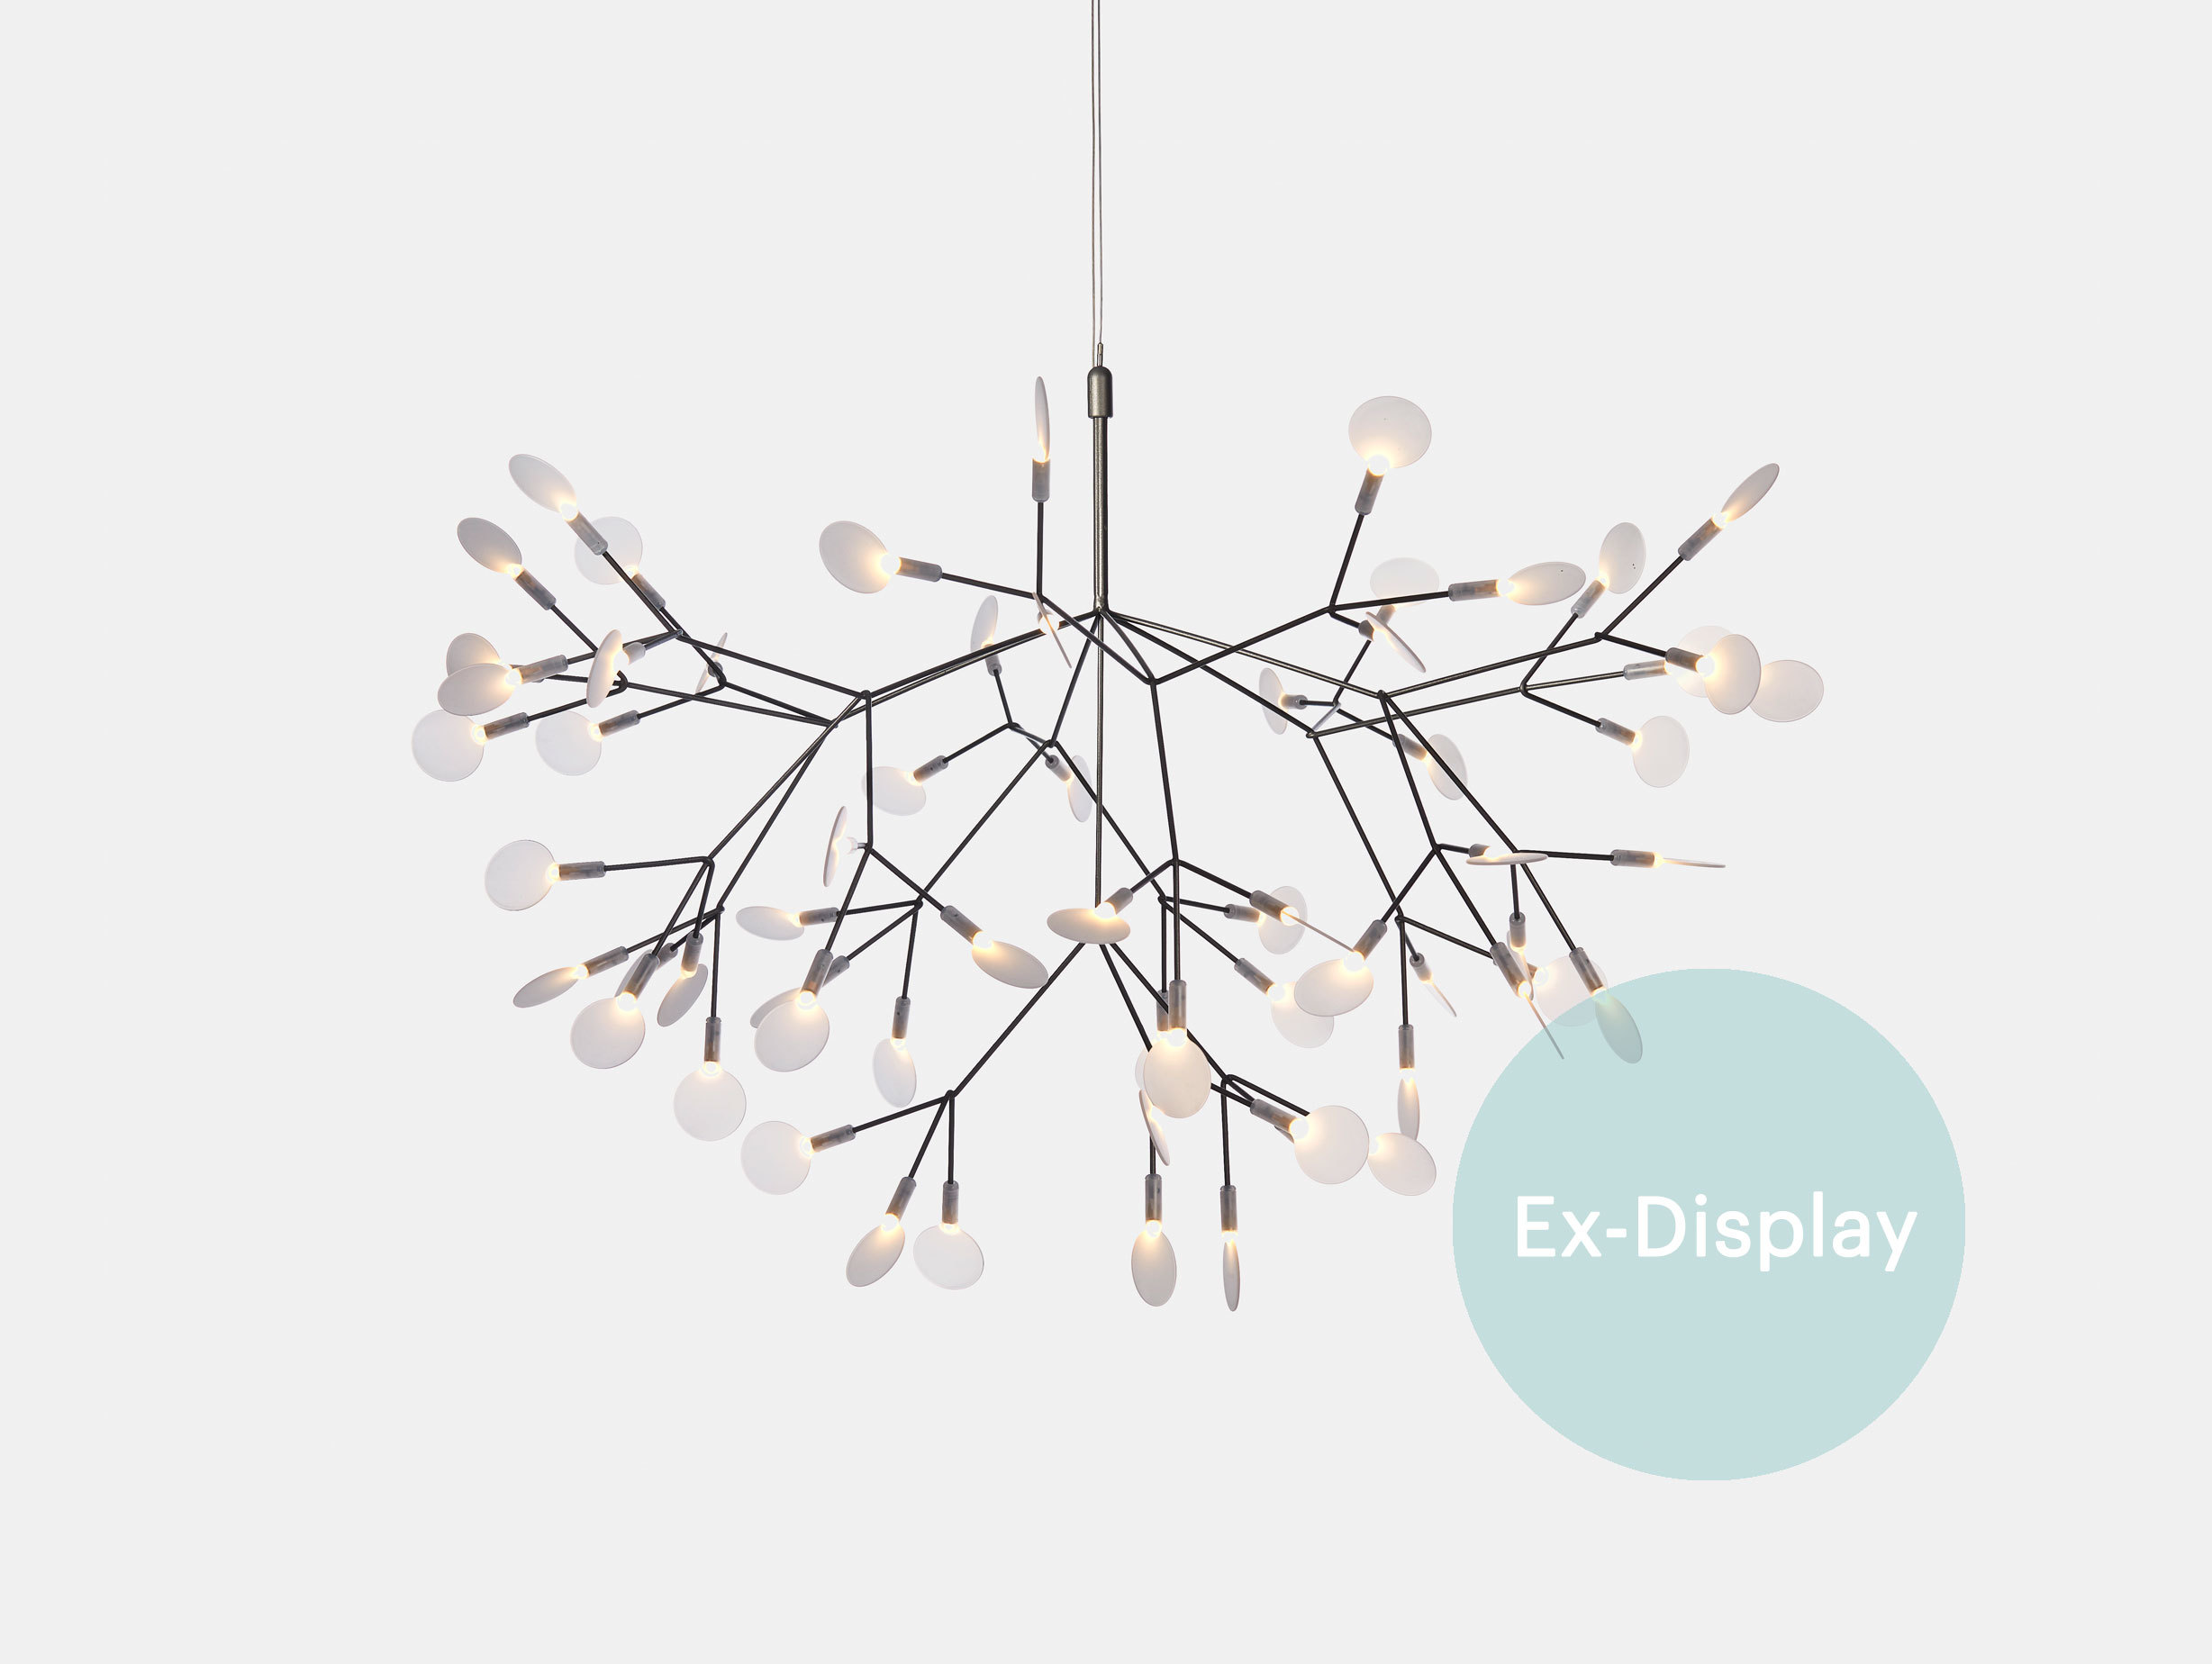 Heracleum II Pendant Light / 30% off at £1895 image 1